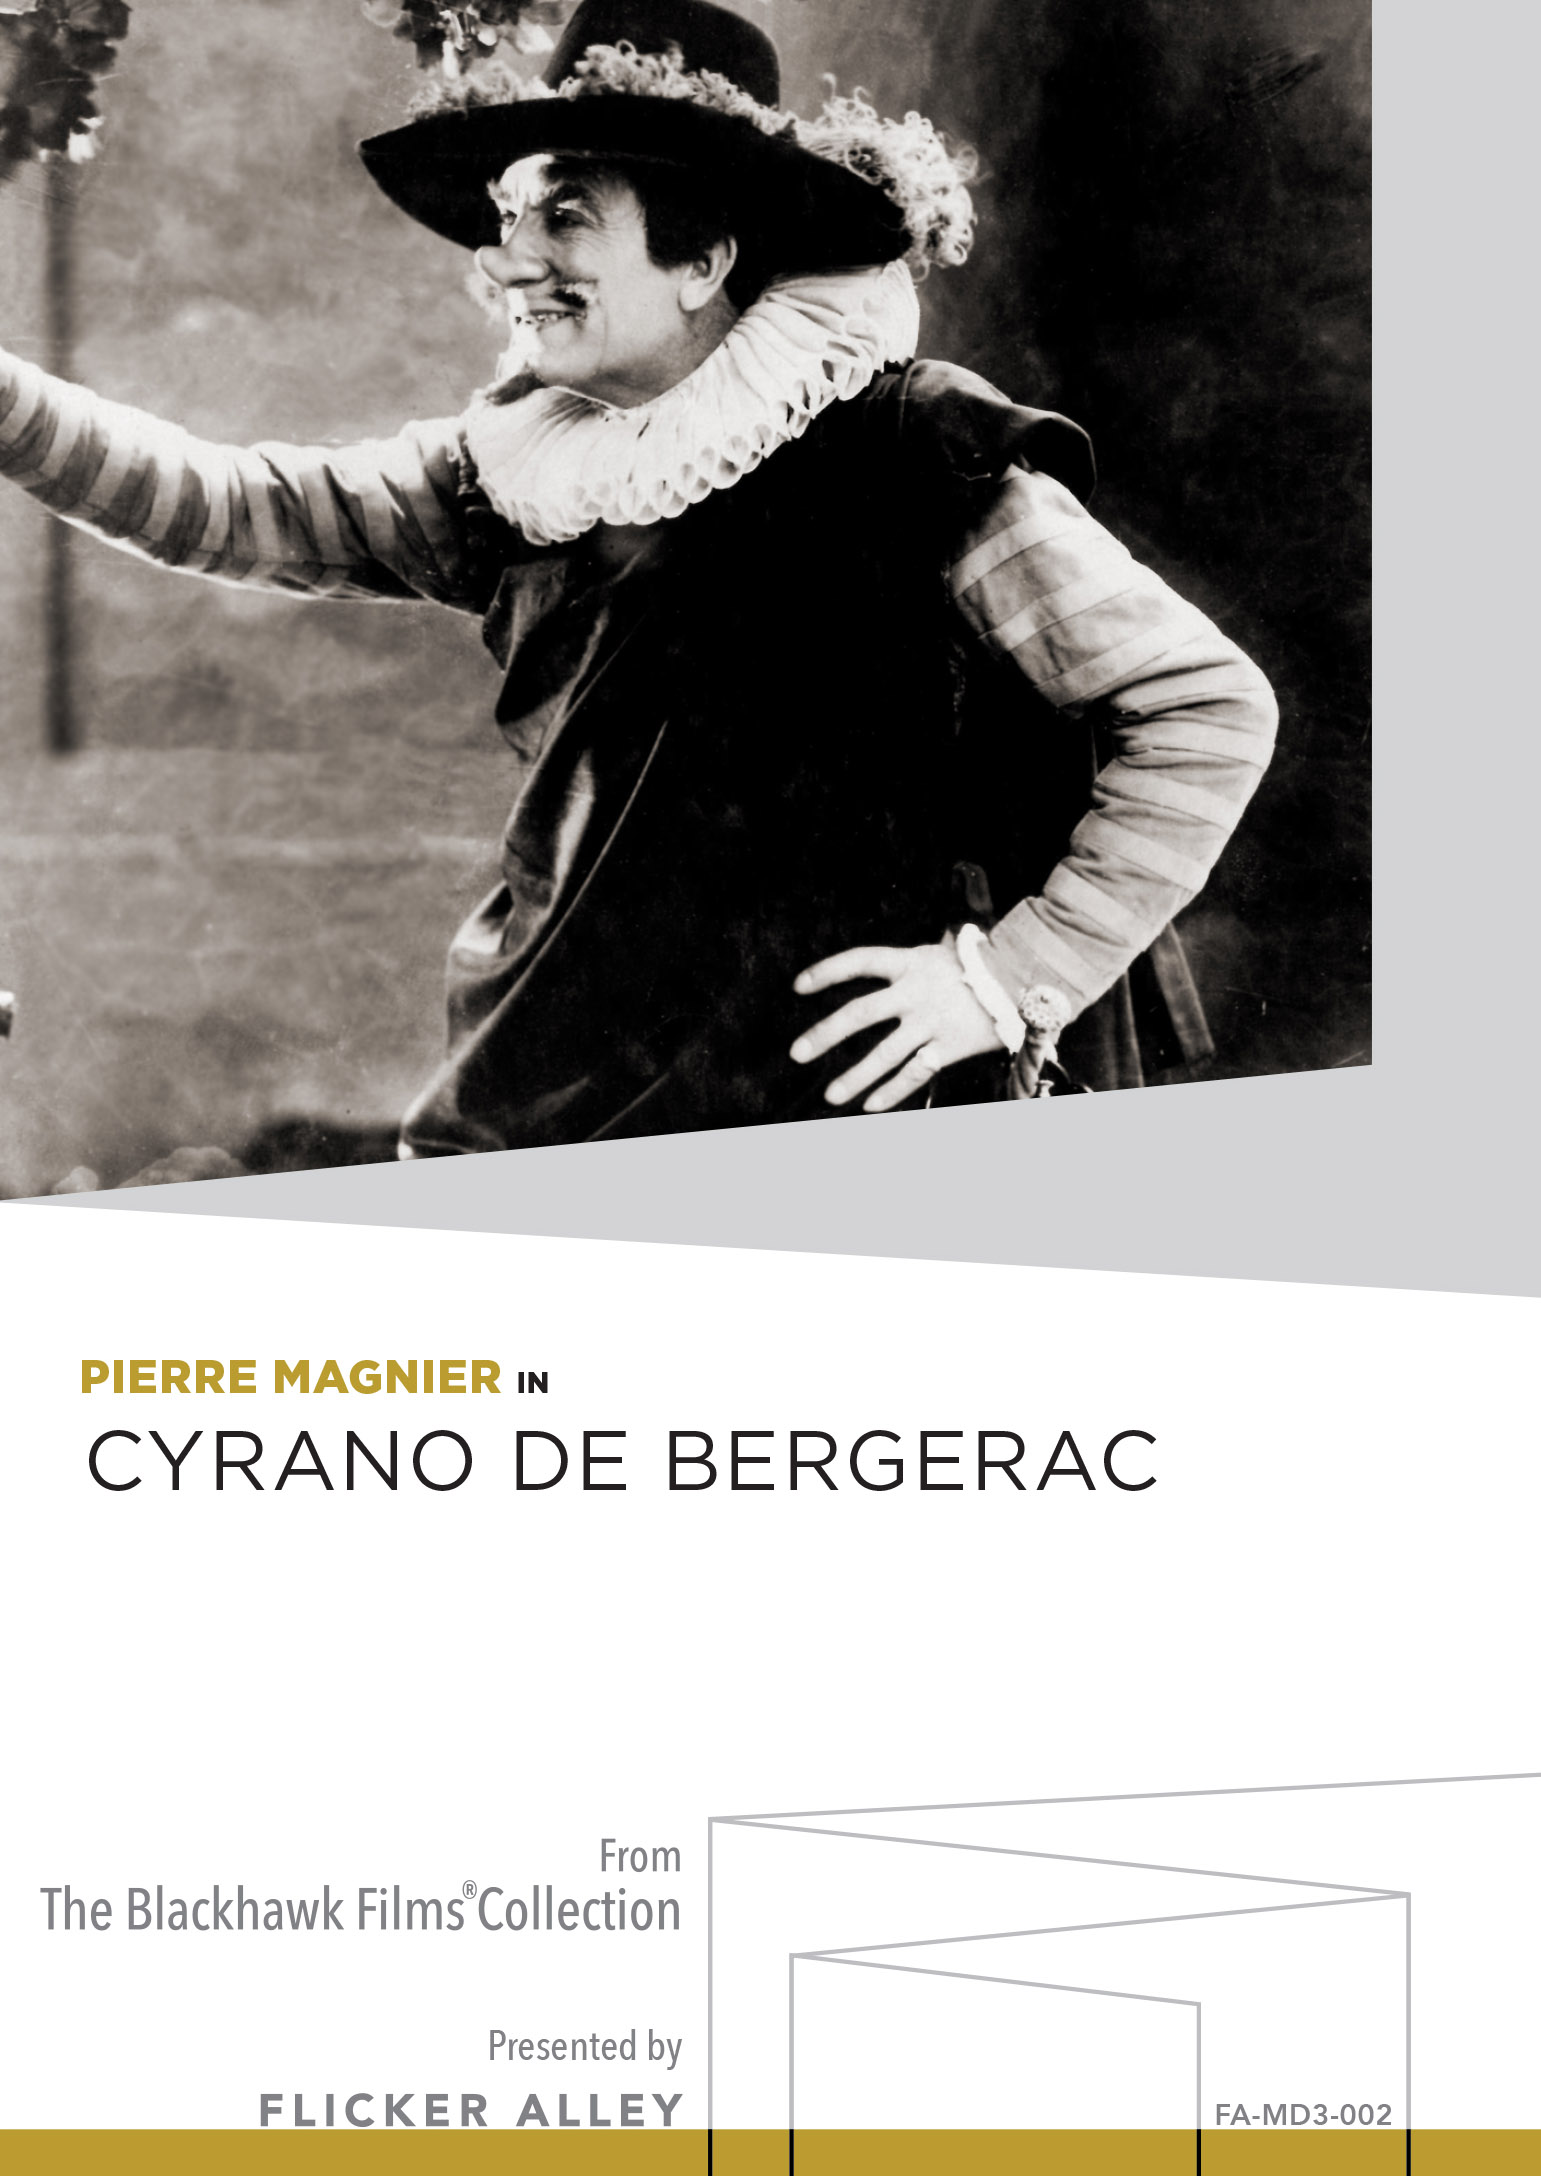 Cyrano de Bergerac MOD DVD Flicker Alley Silent Film Blu-ray DVD Stream buy MOD